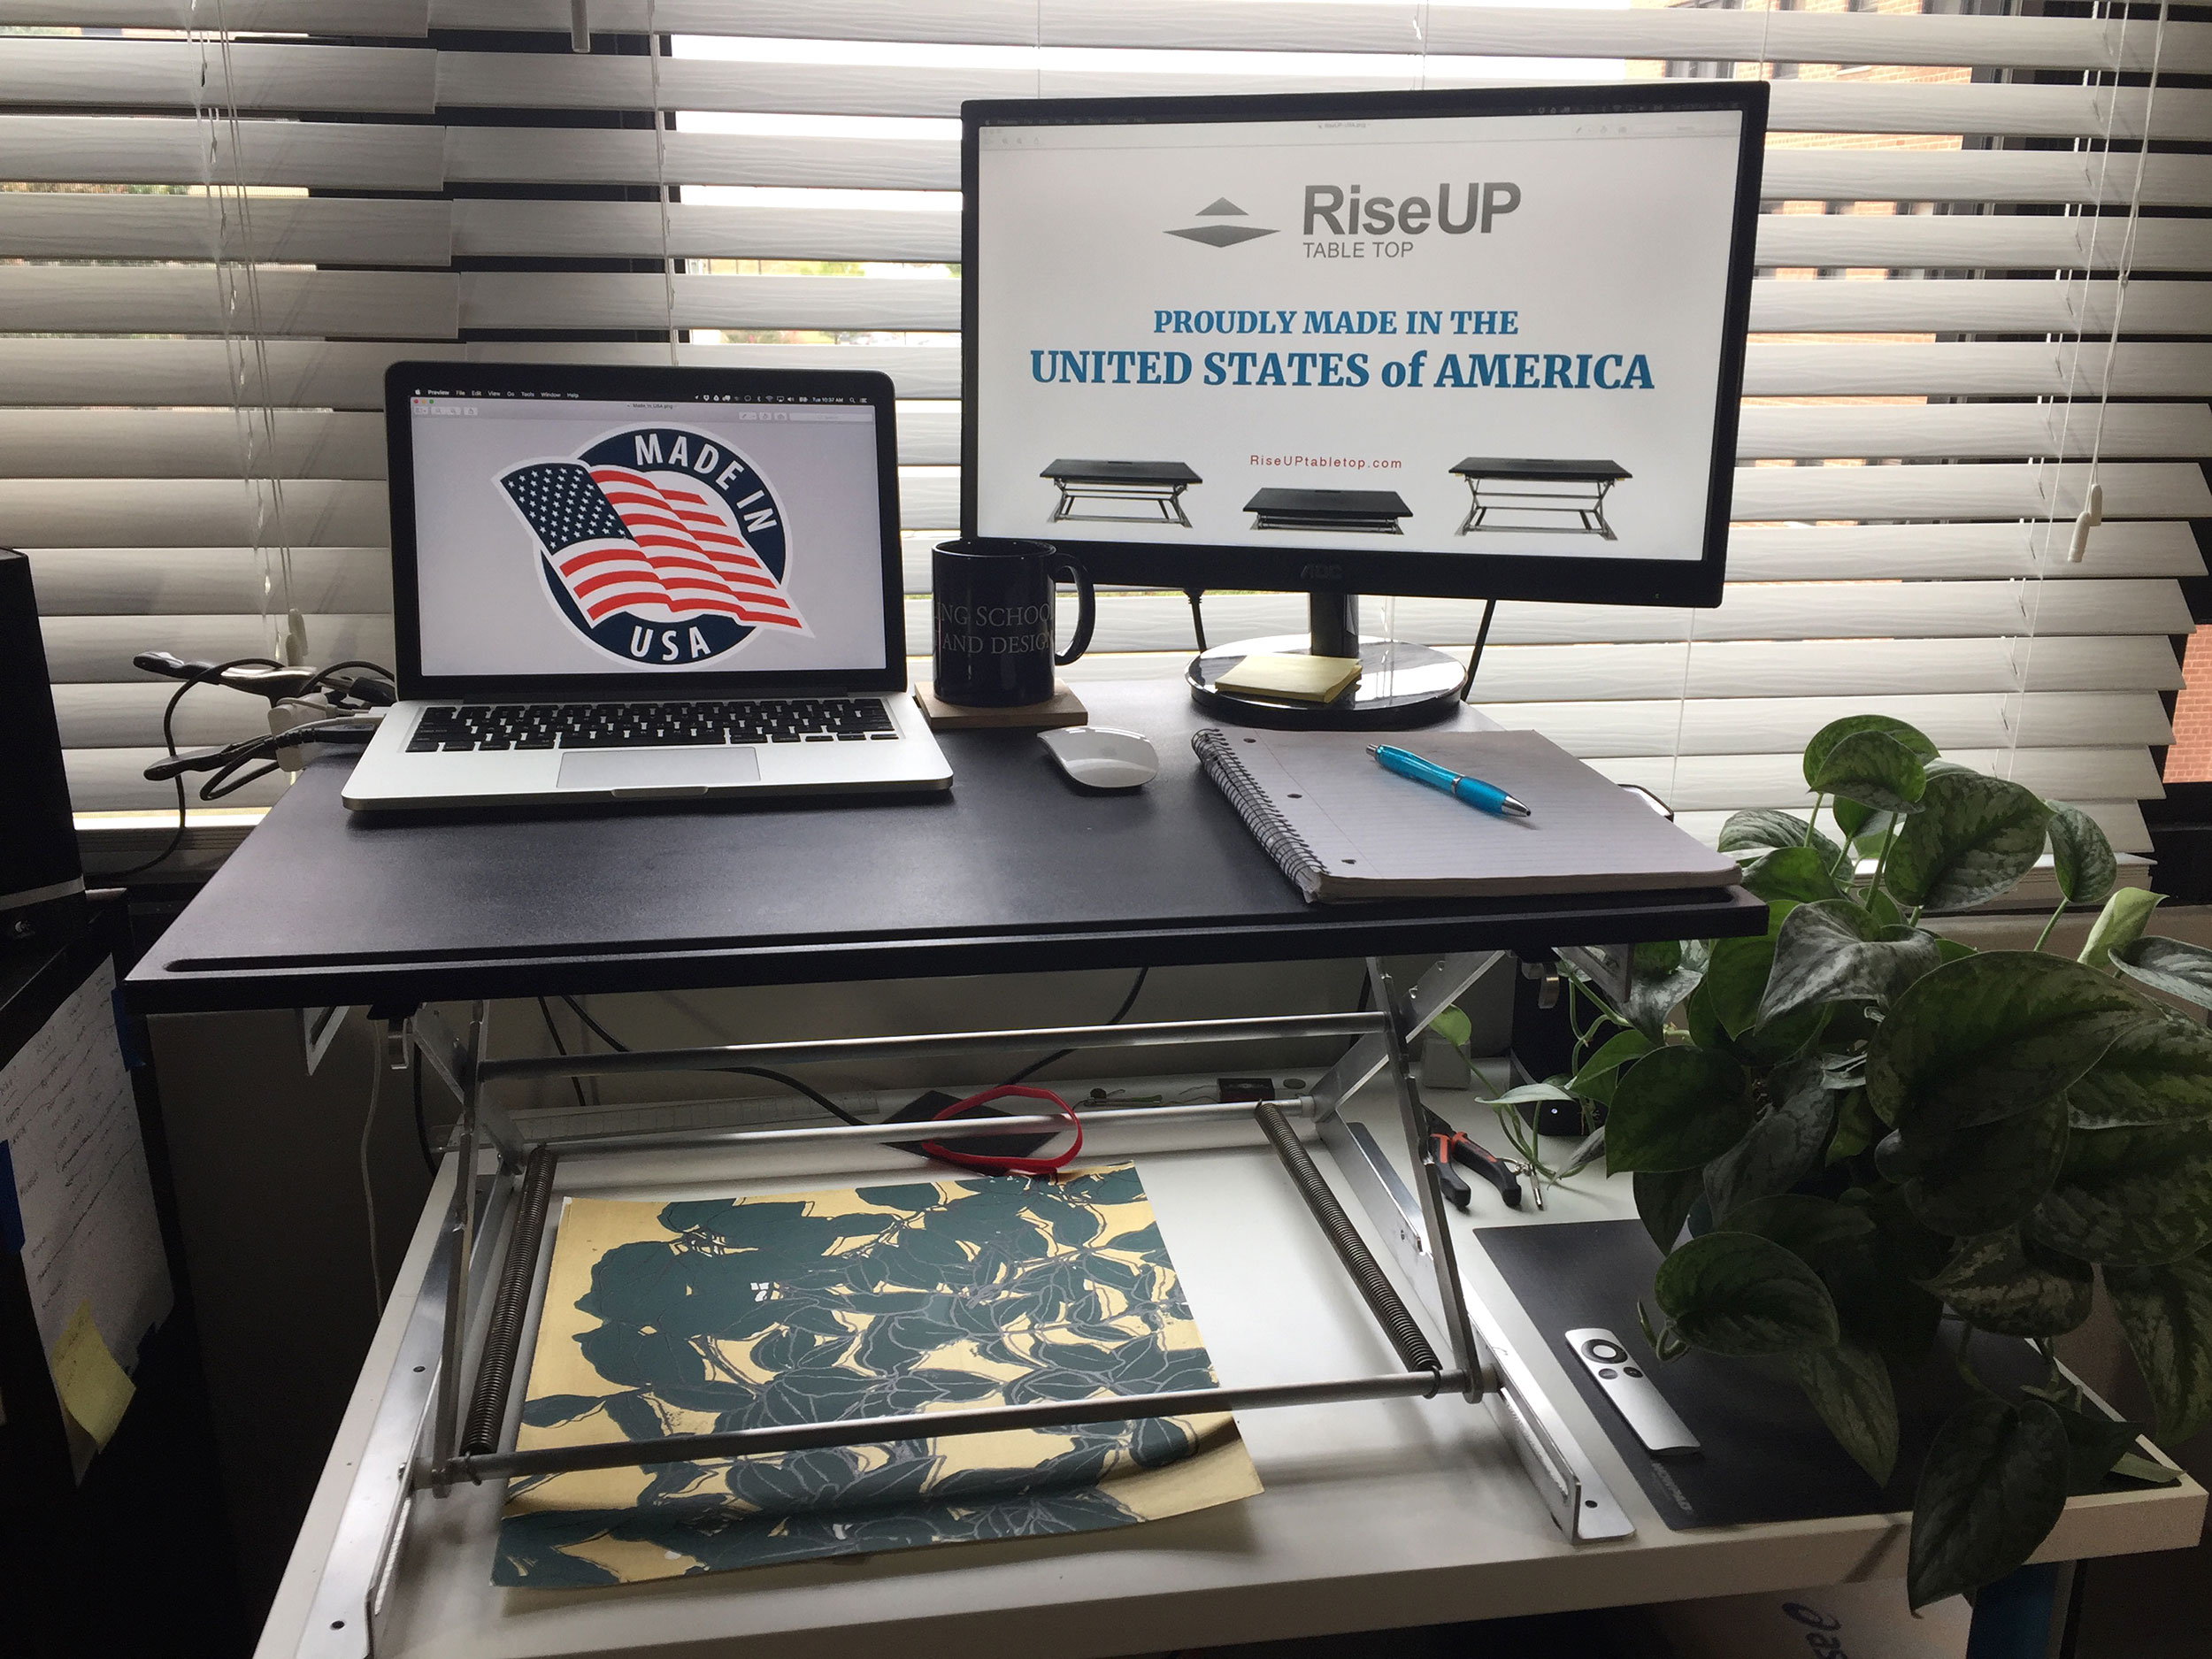 RiseUP Stand Up Desk